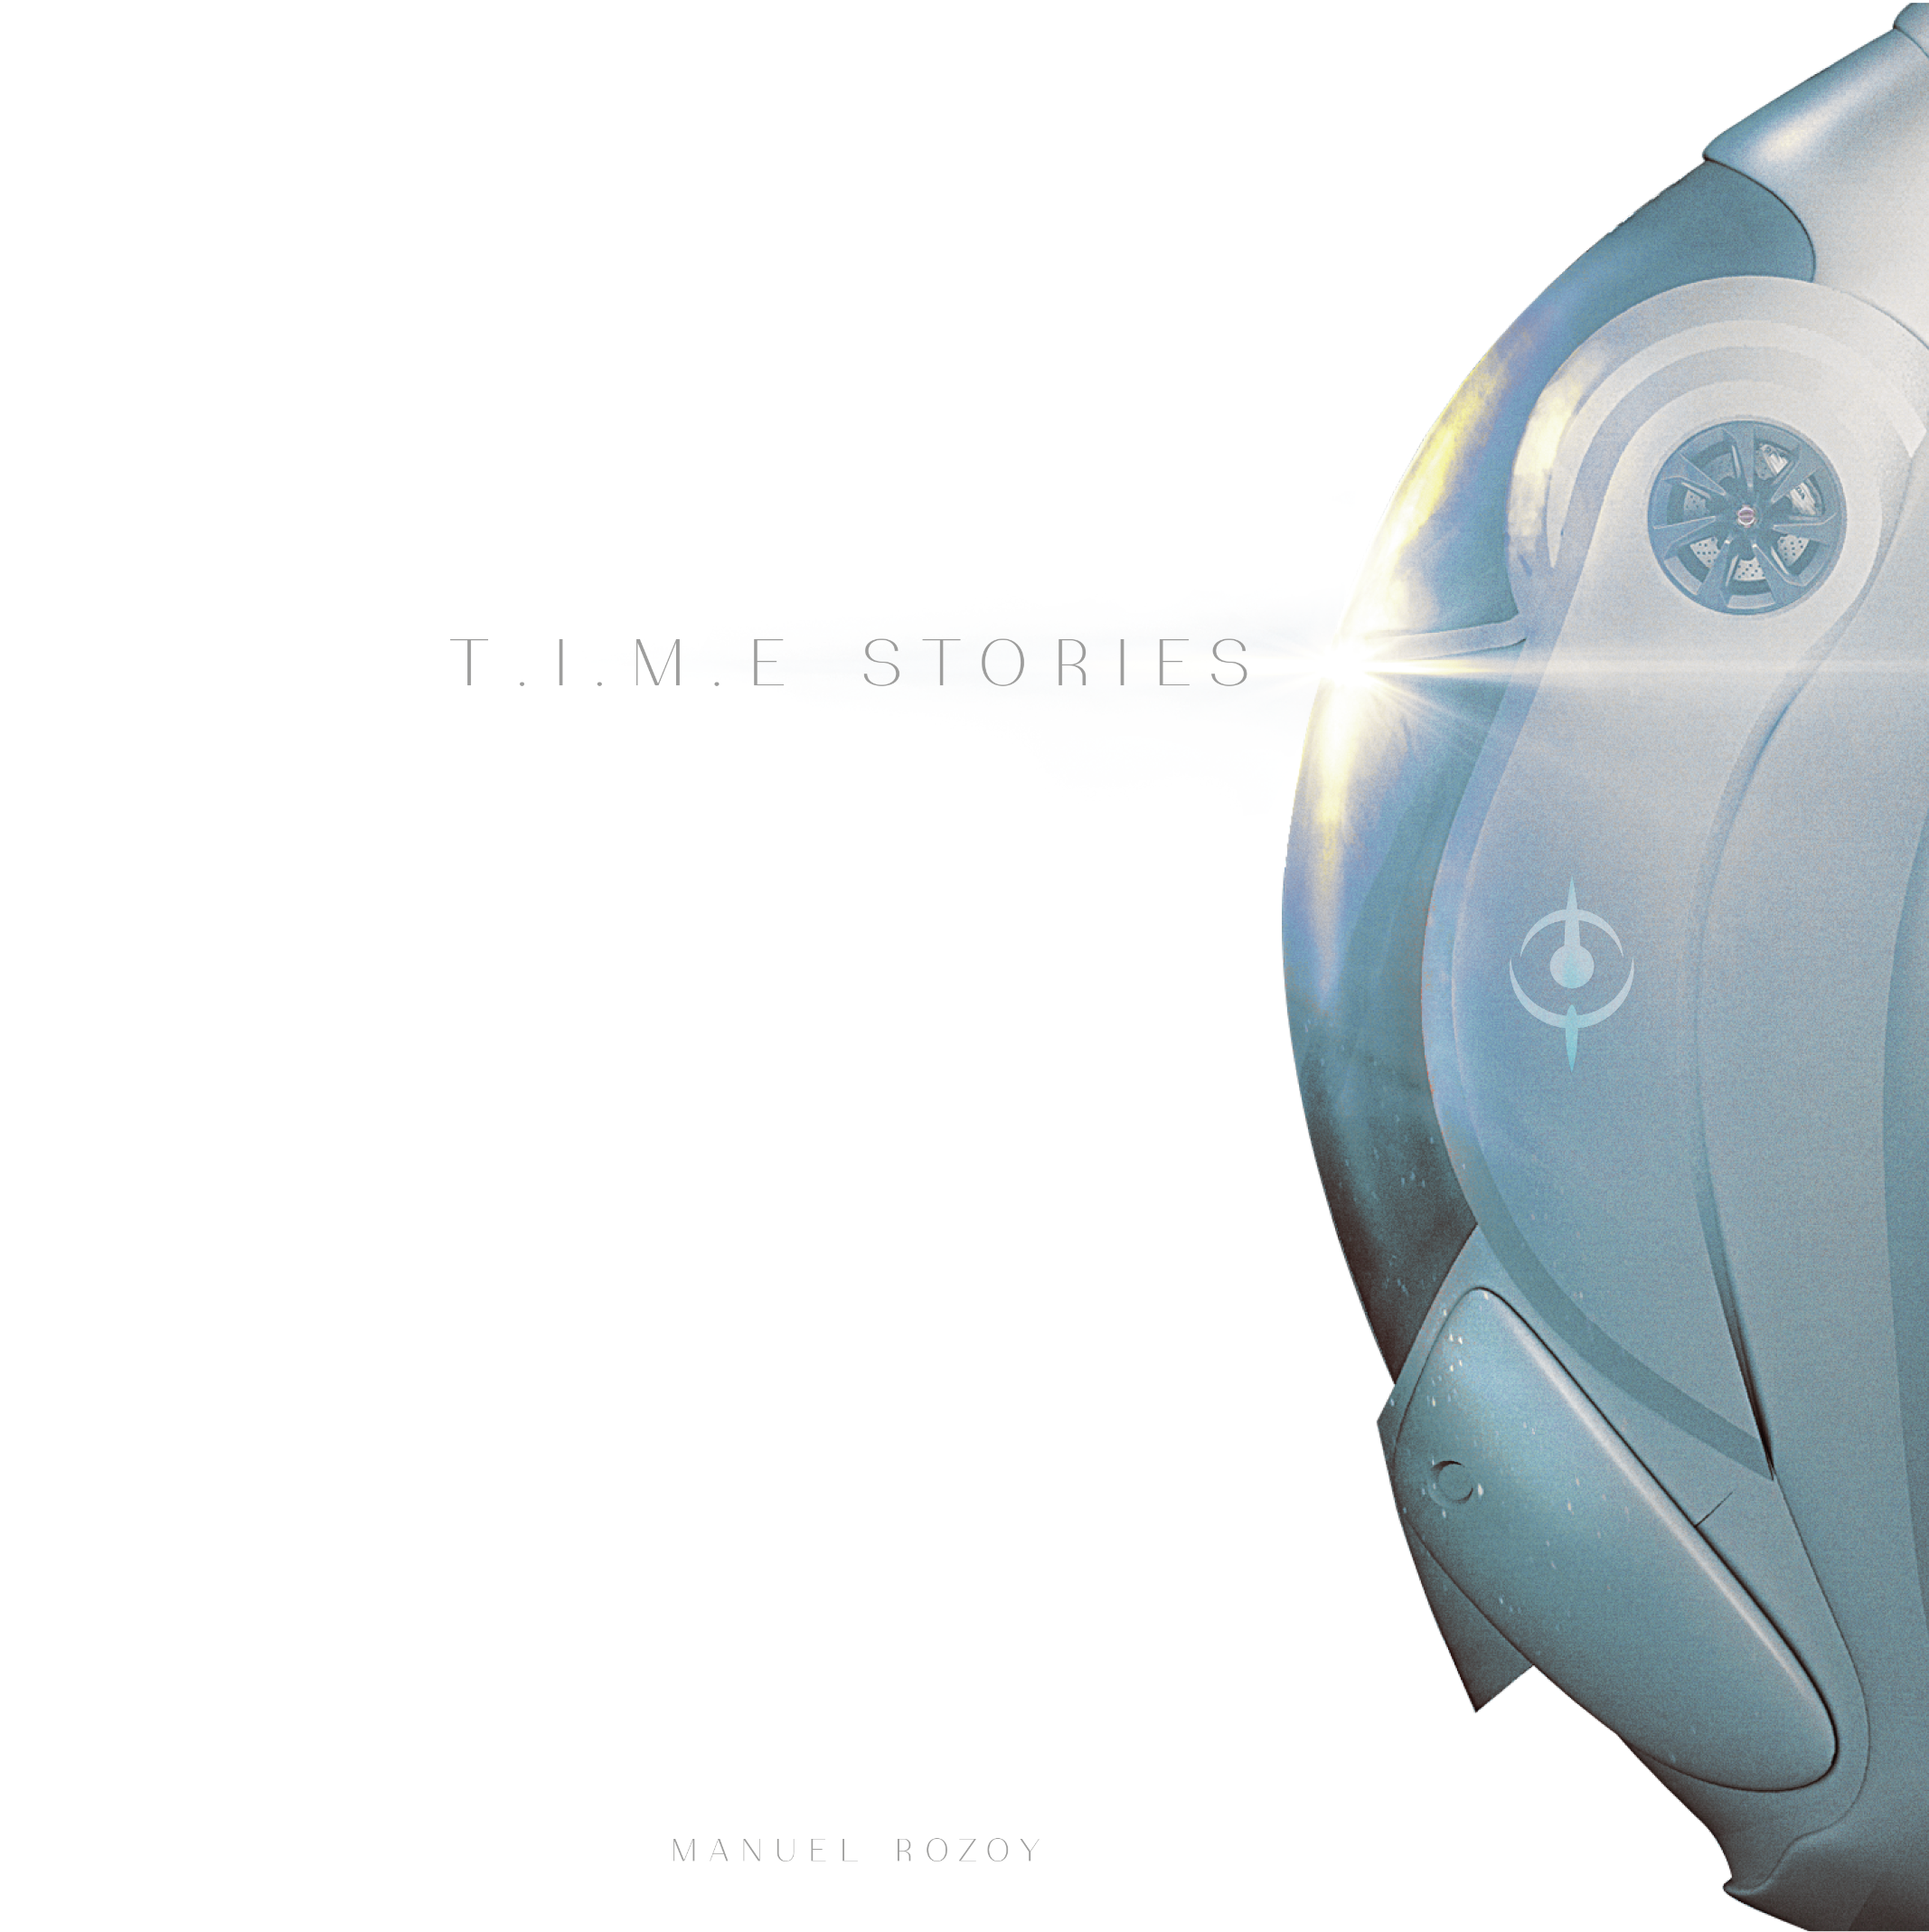 T.I.M.E Stories (TIME Stories - including Asylum Mission)